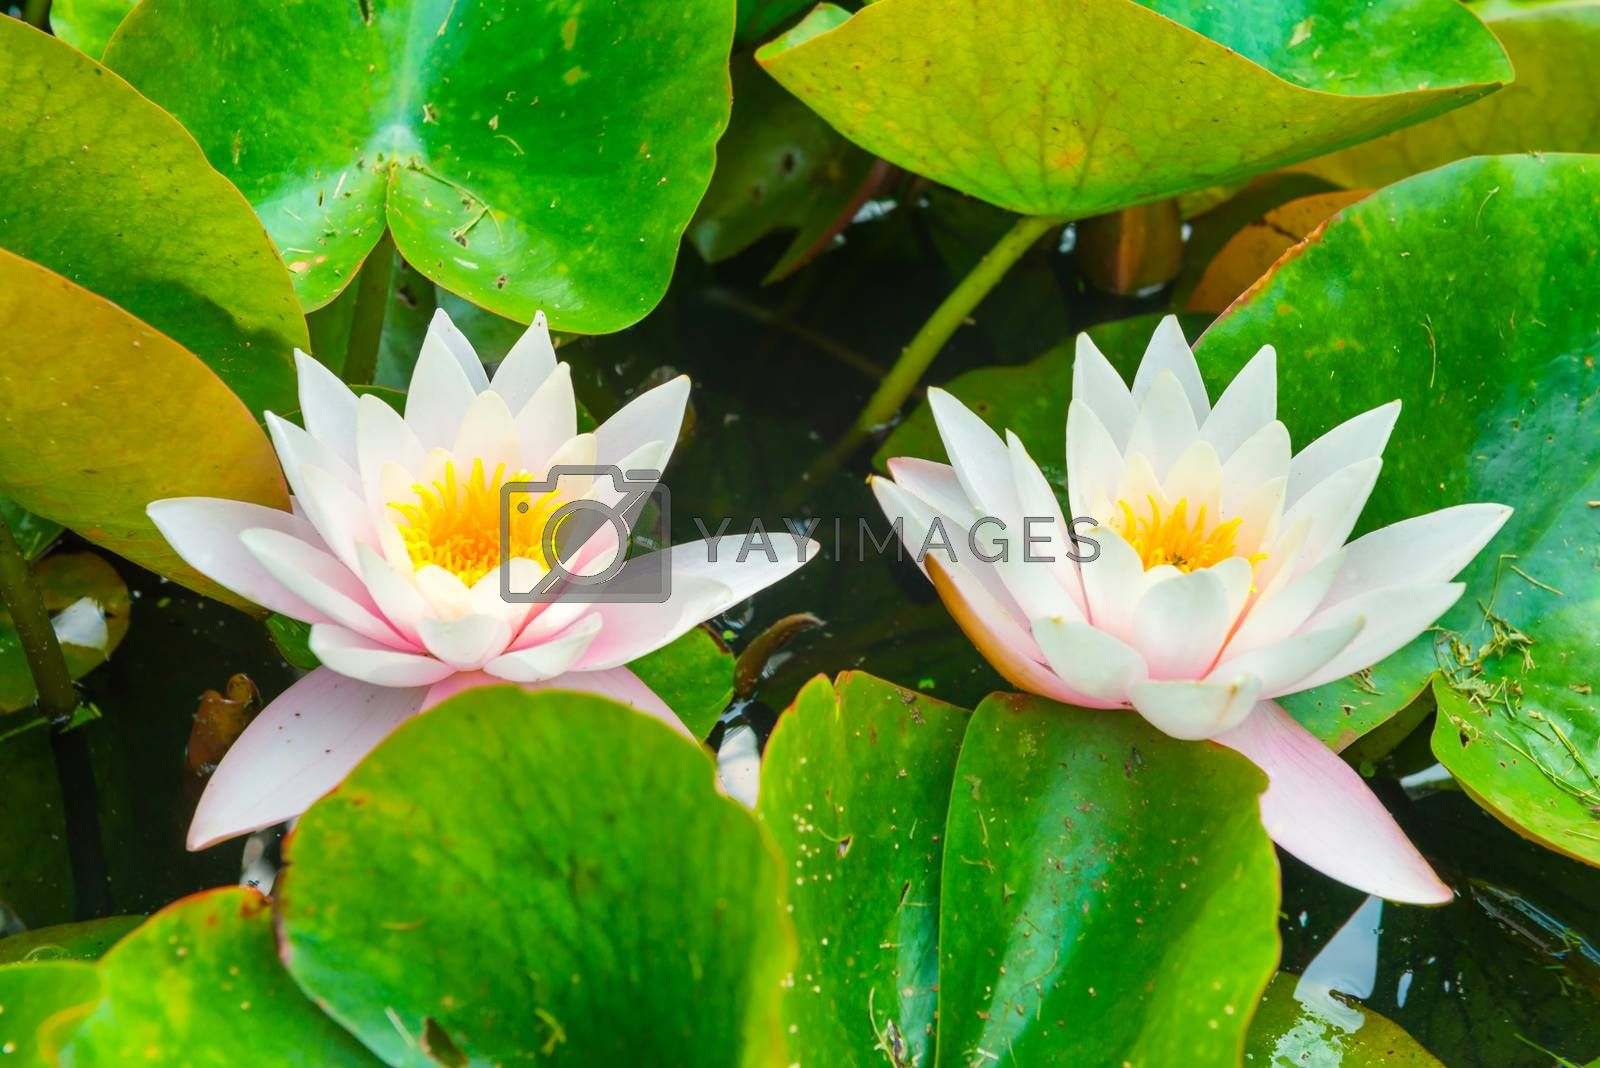 White flowers- water lillies  with green leaves on the pond